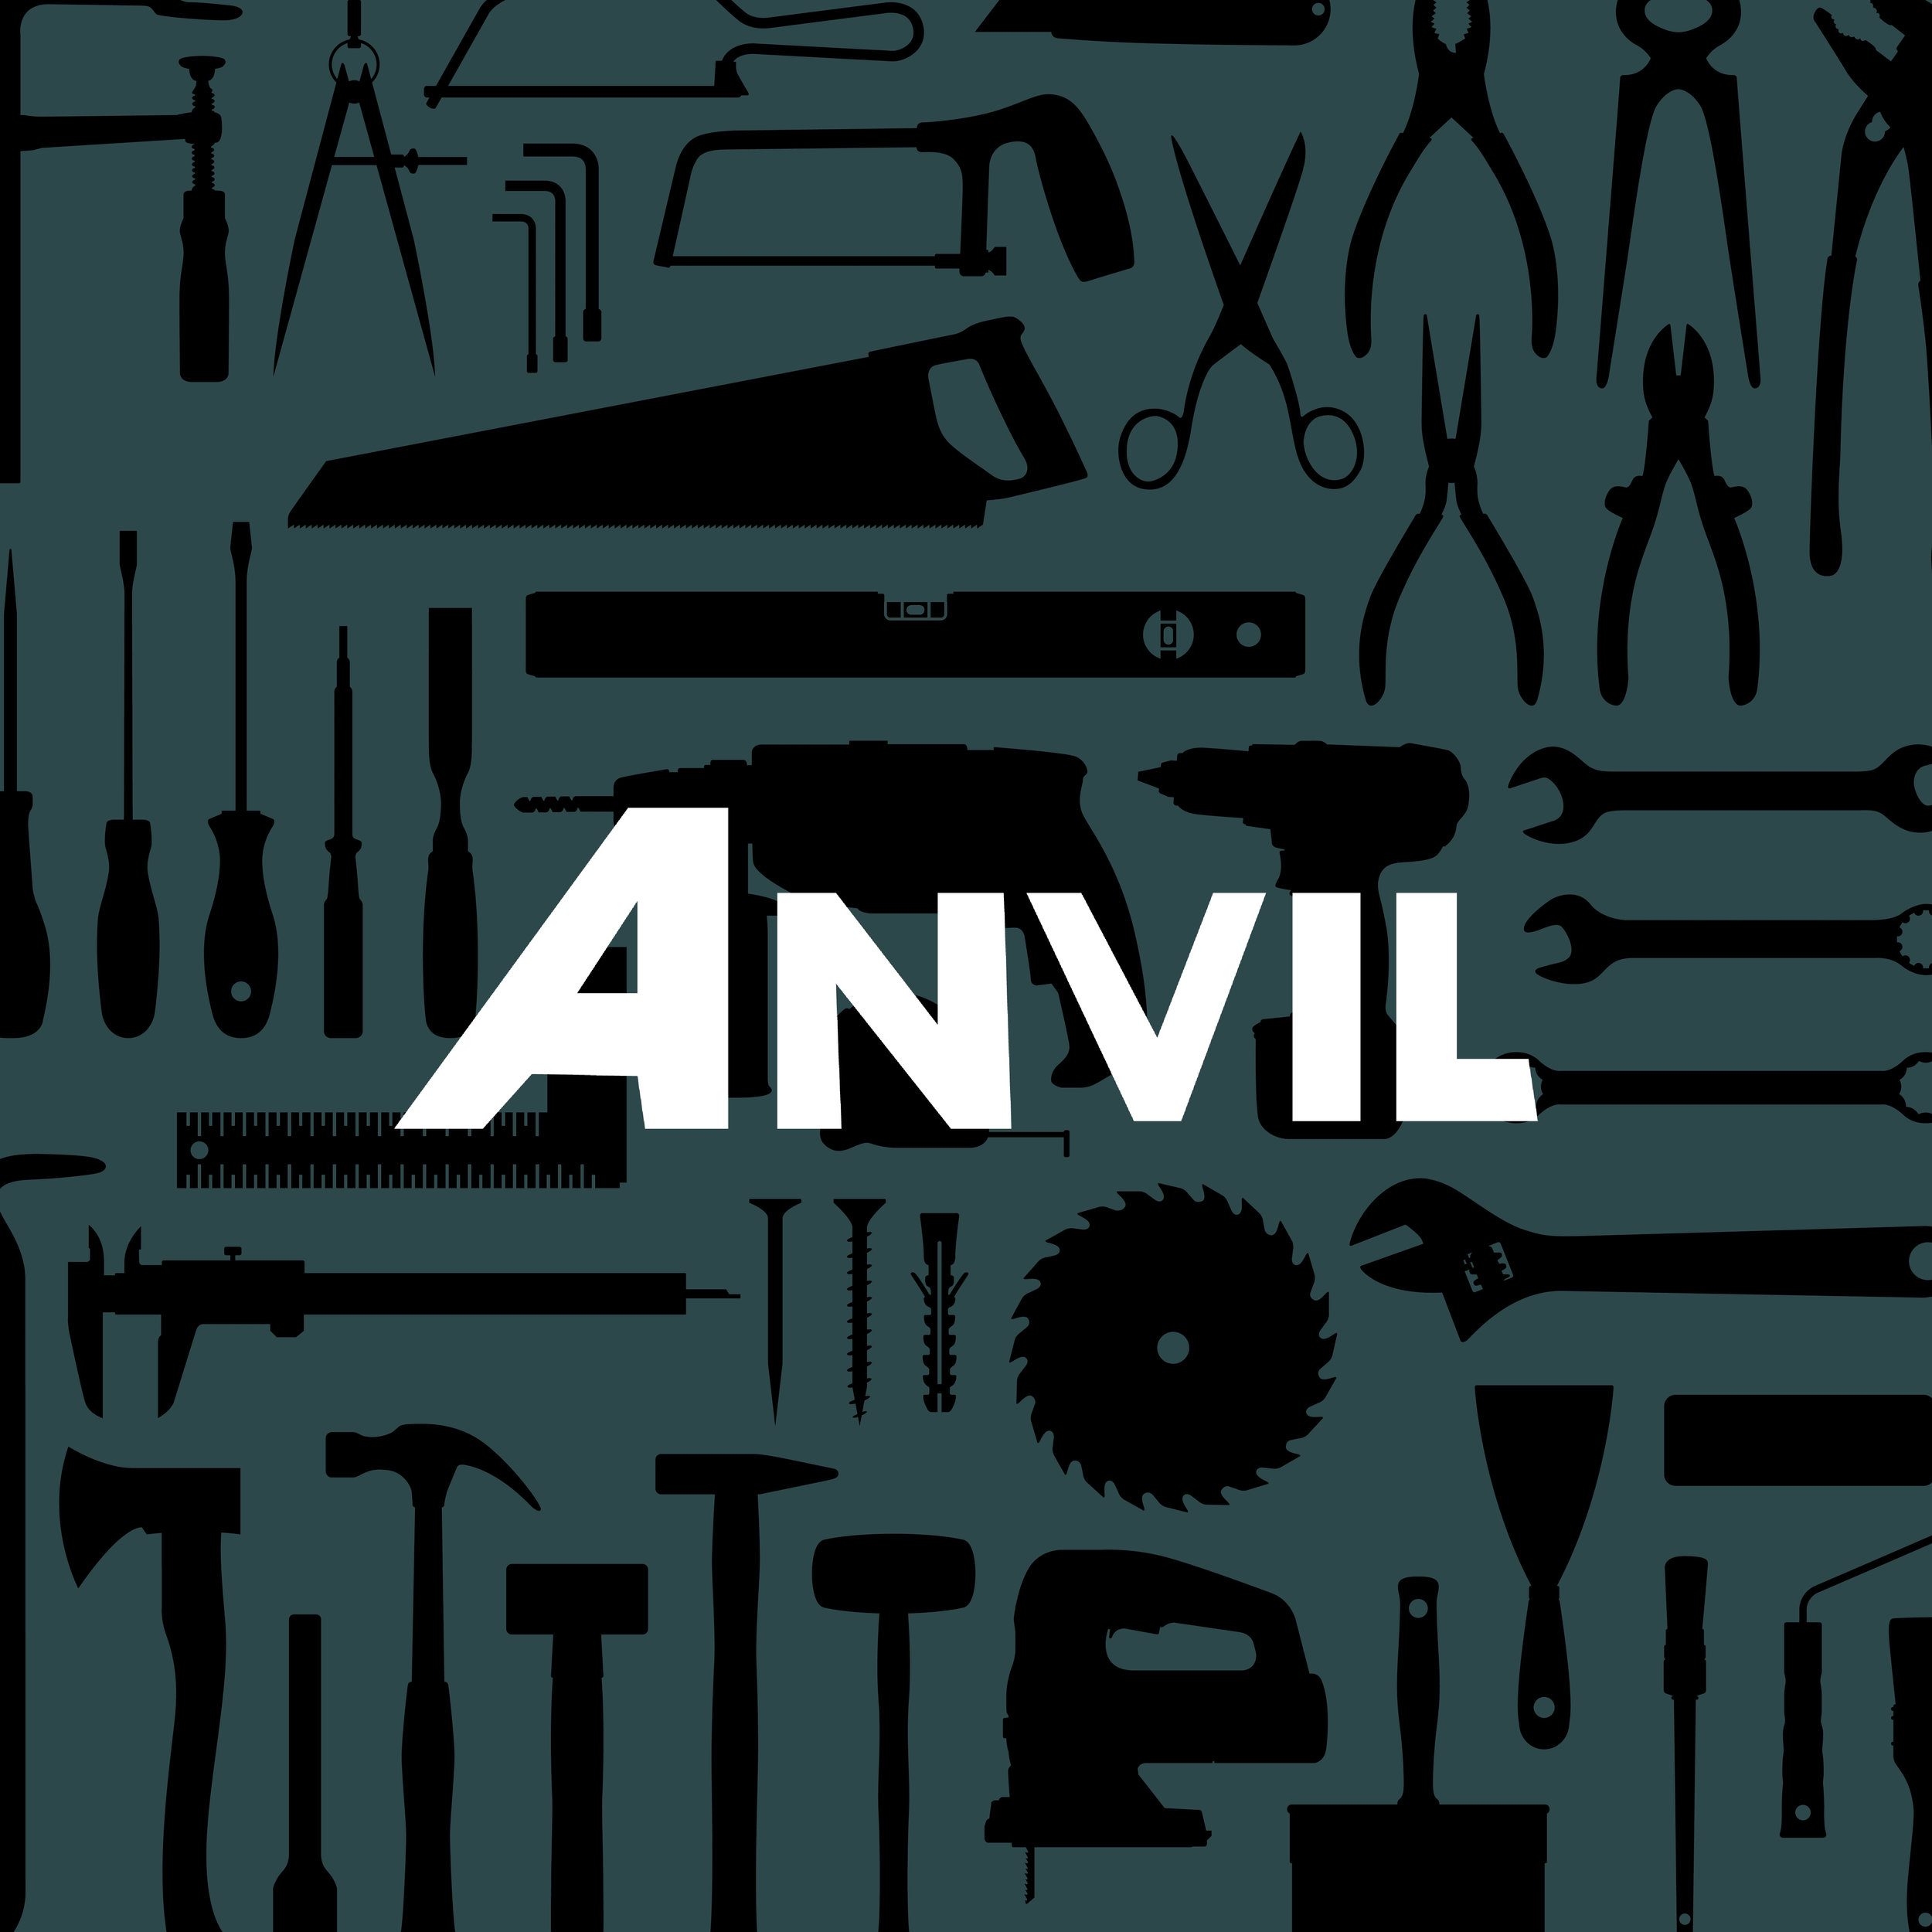 Anvil (The Home Depot)